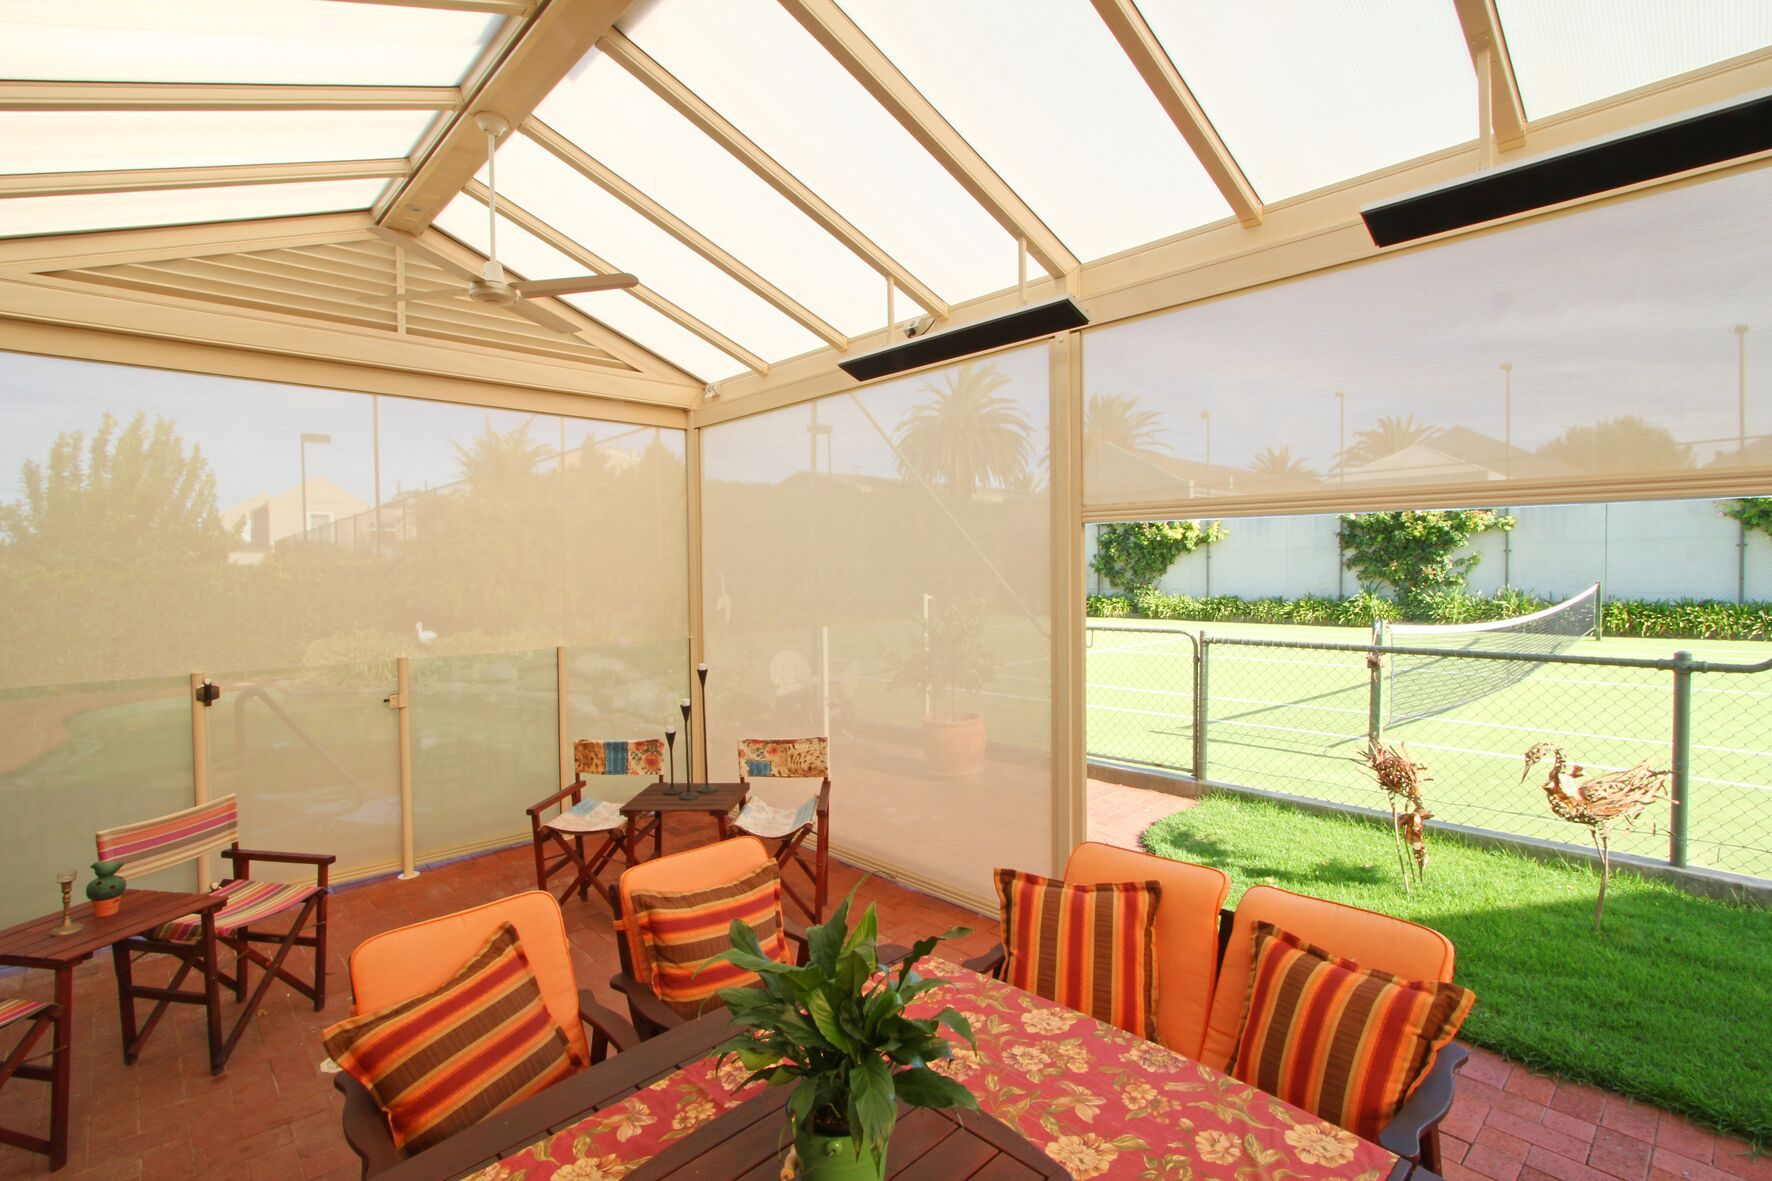 Outdoor Blinds and Awnings Adelaide | Locally Made Quality ...